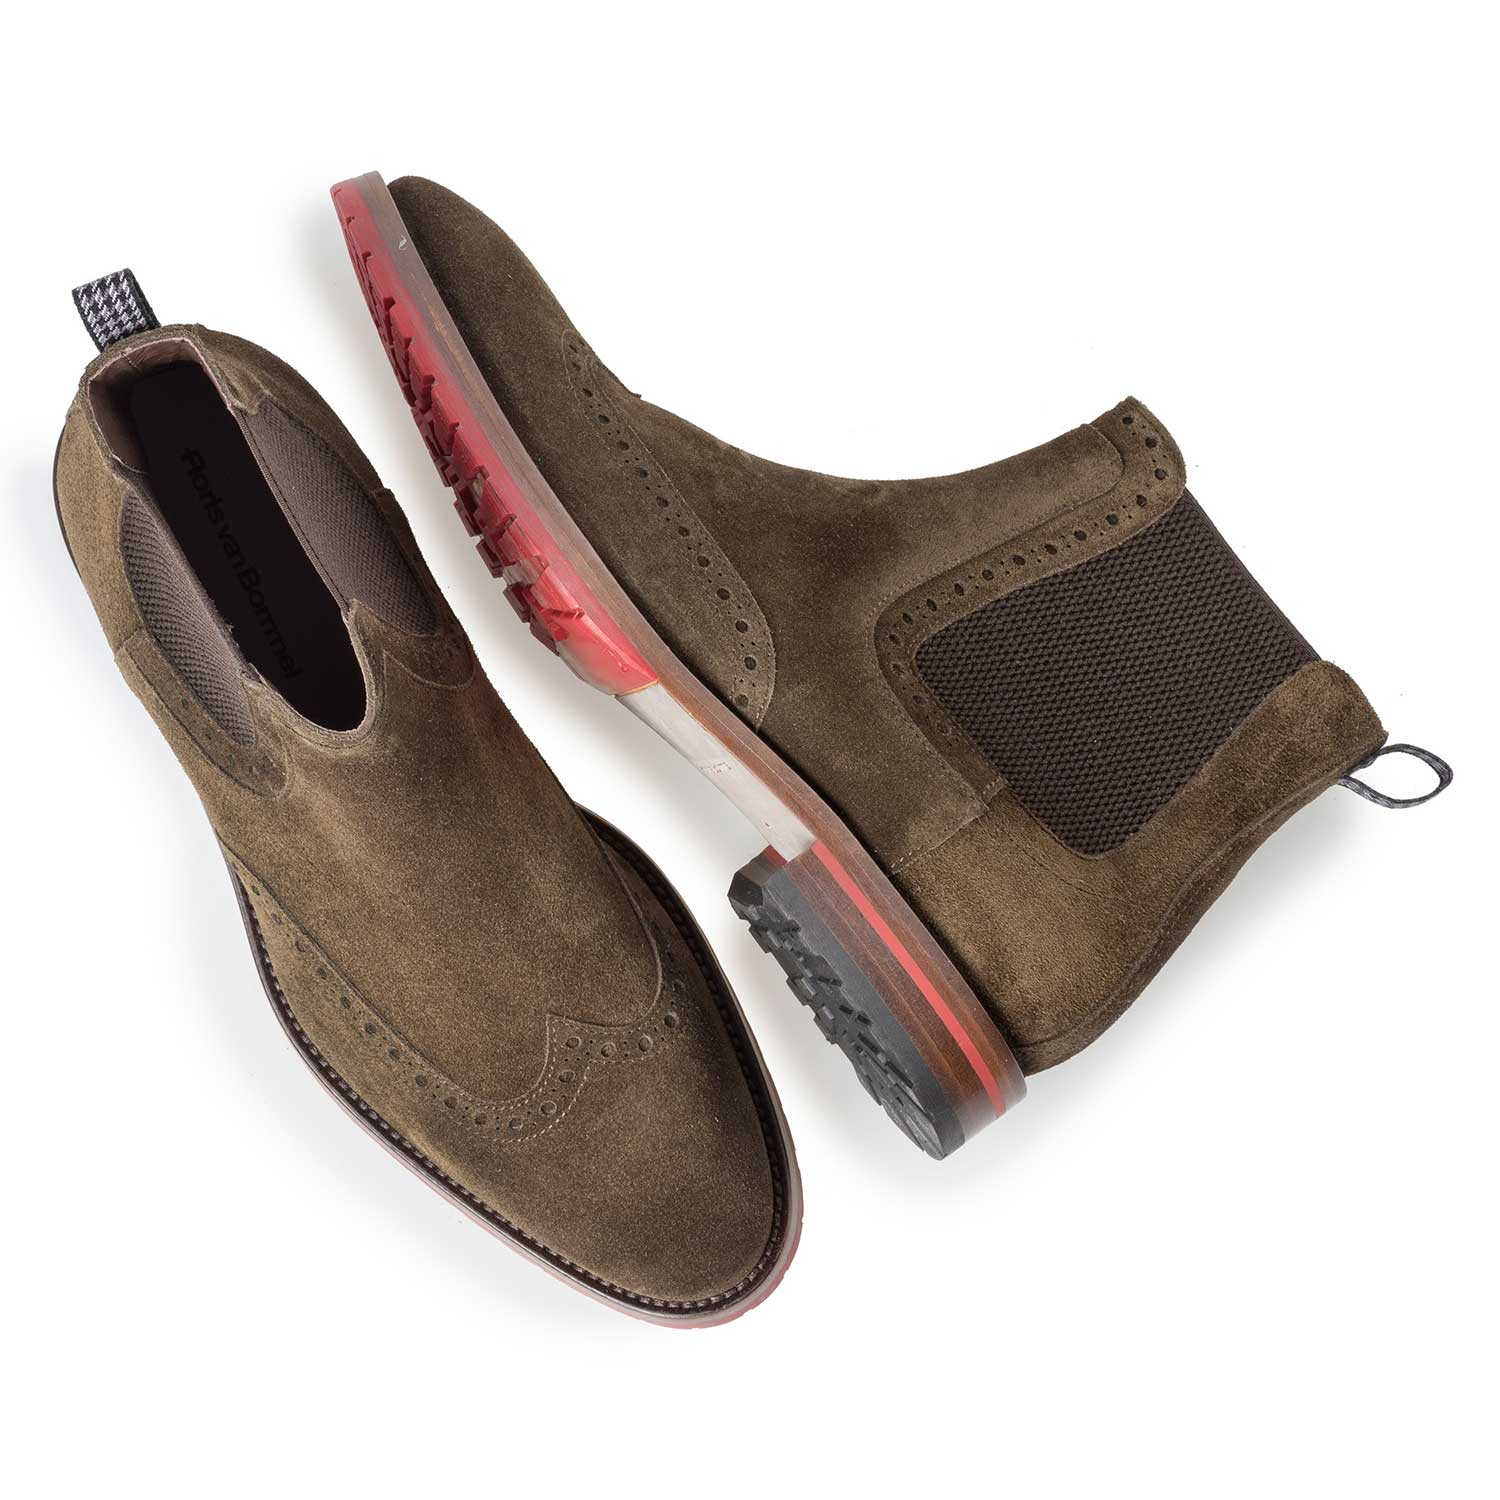 10329/05 - Brown/olive green calf suede leather Chelsea boot